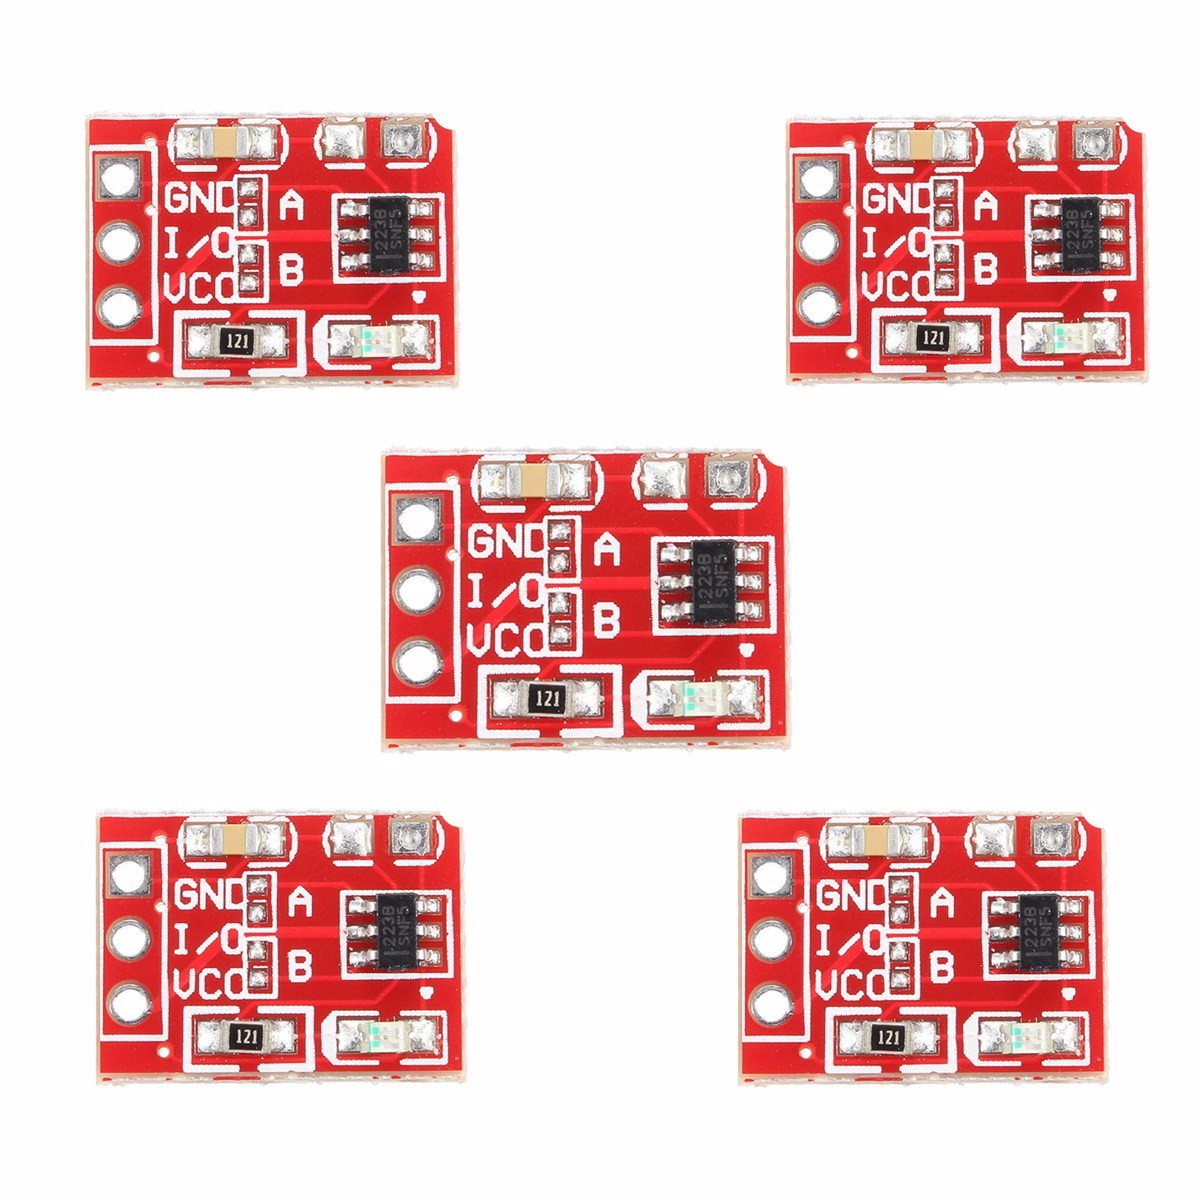 5Pcs 2.5-5.5V TTP223 Capacitive Touch Switch Button Self Lock Module For Arduino